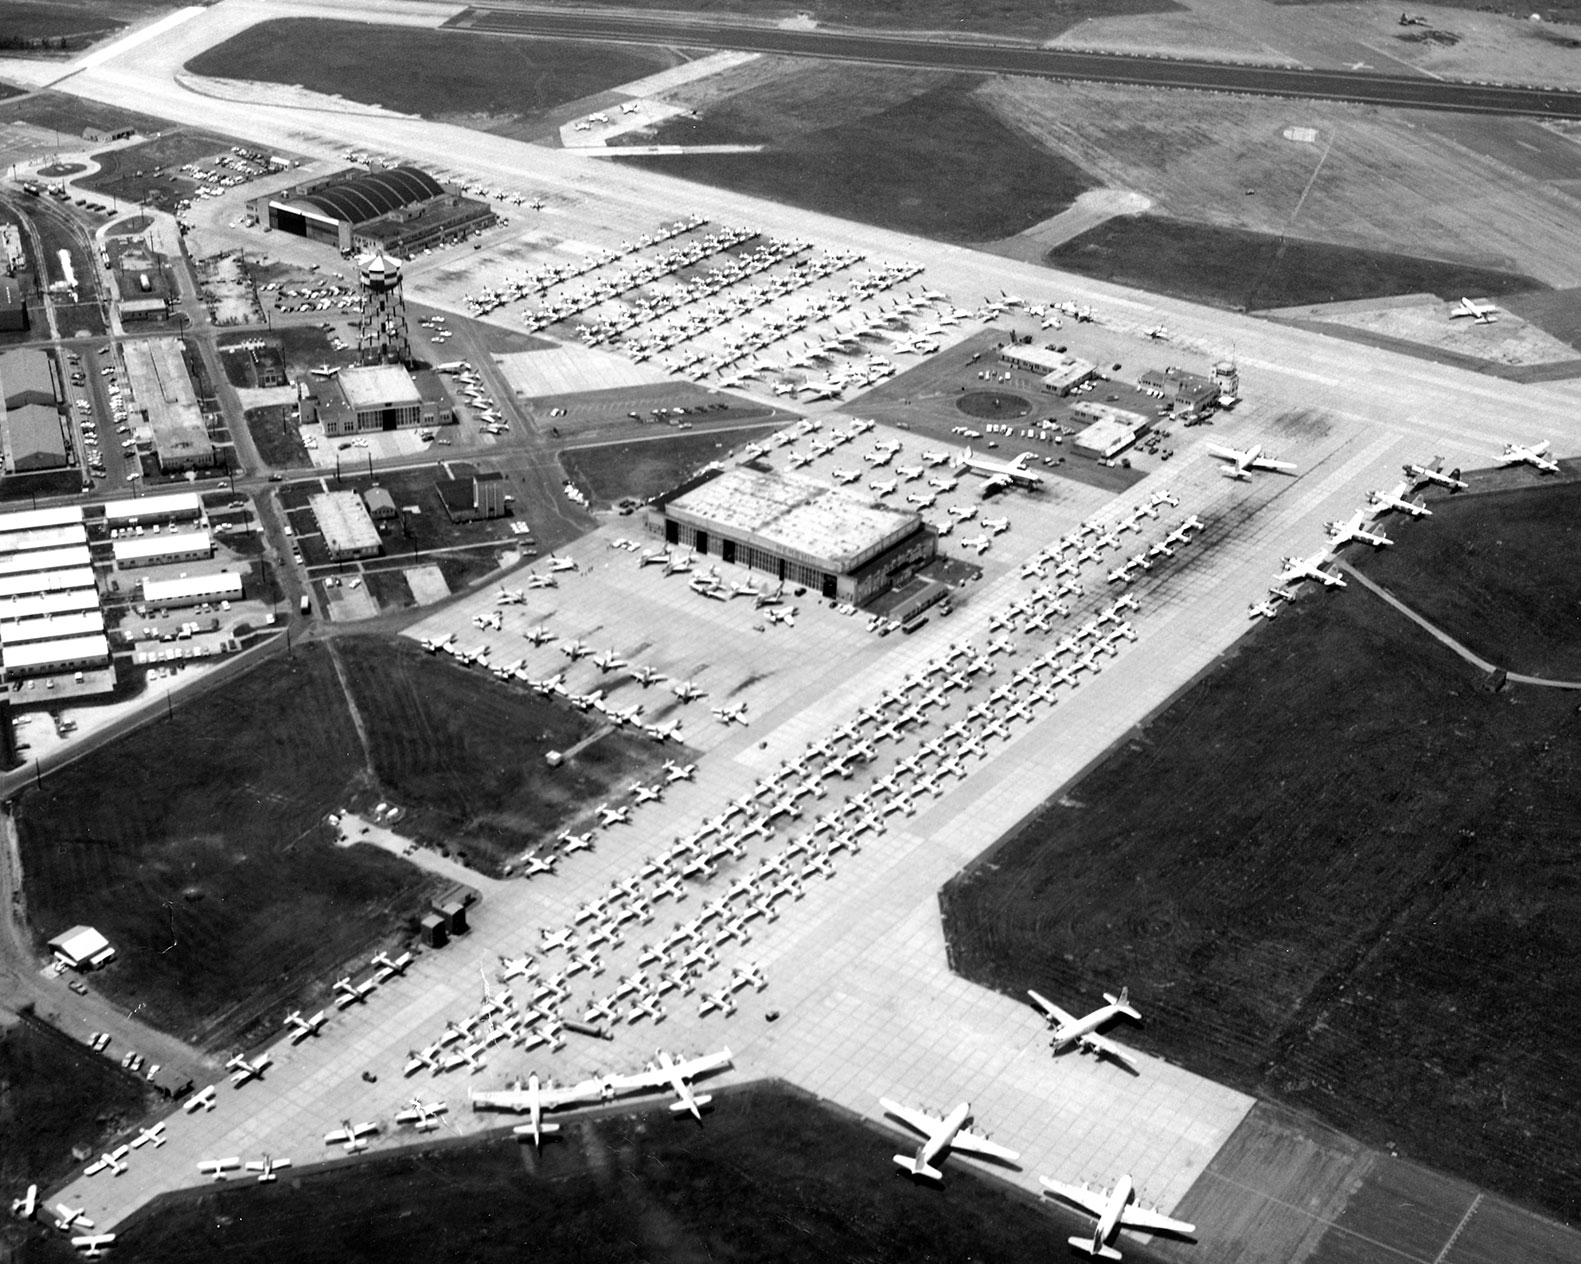 Black and white image of the large Memphis Millington Airport Ramp full of small airplanes